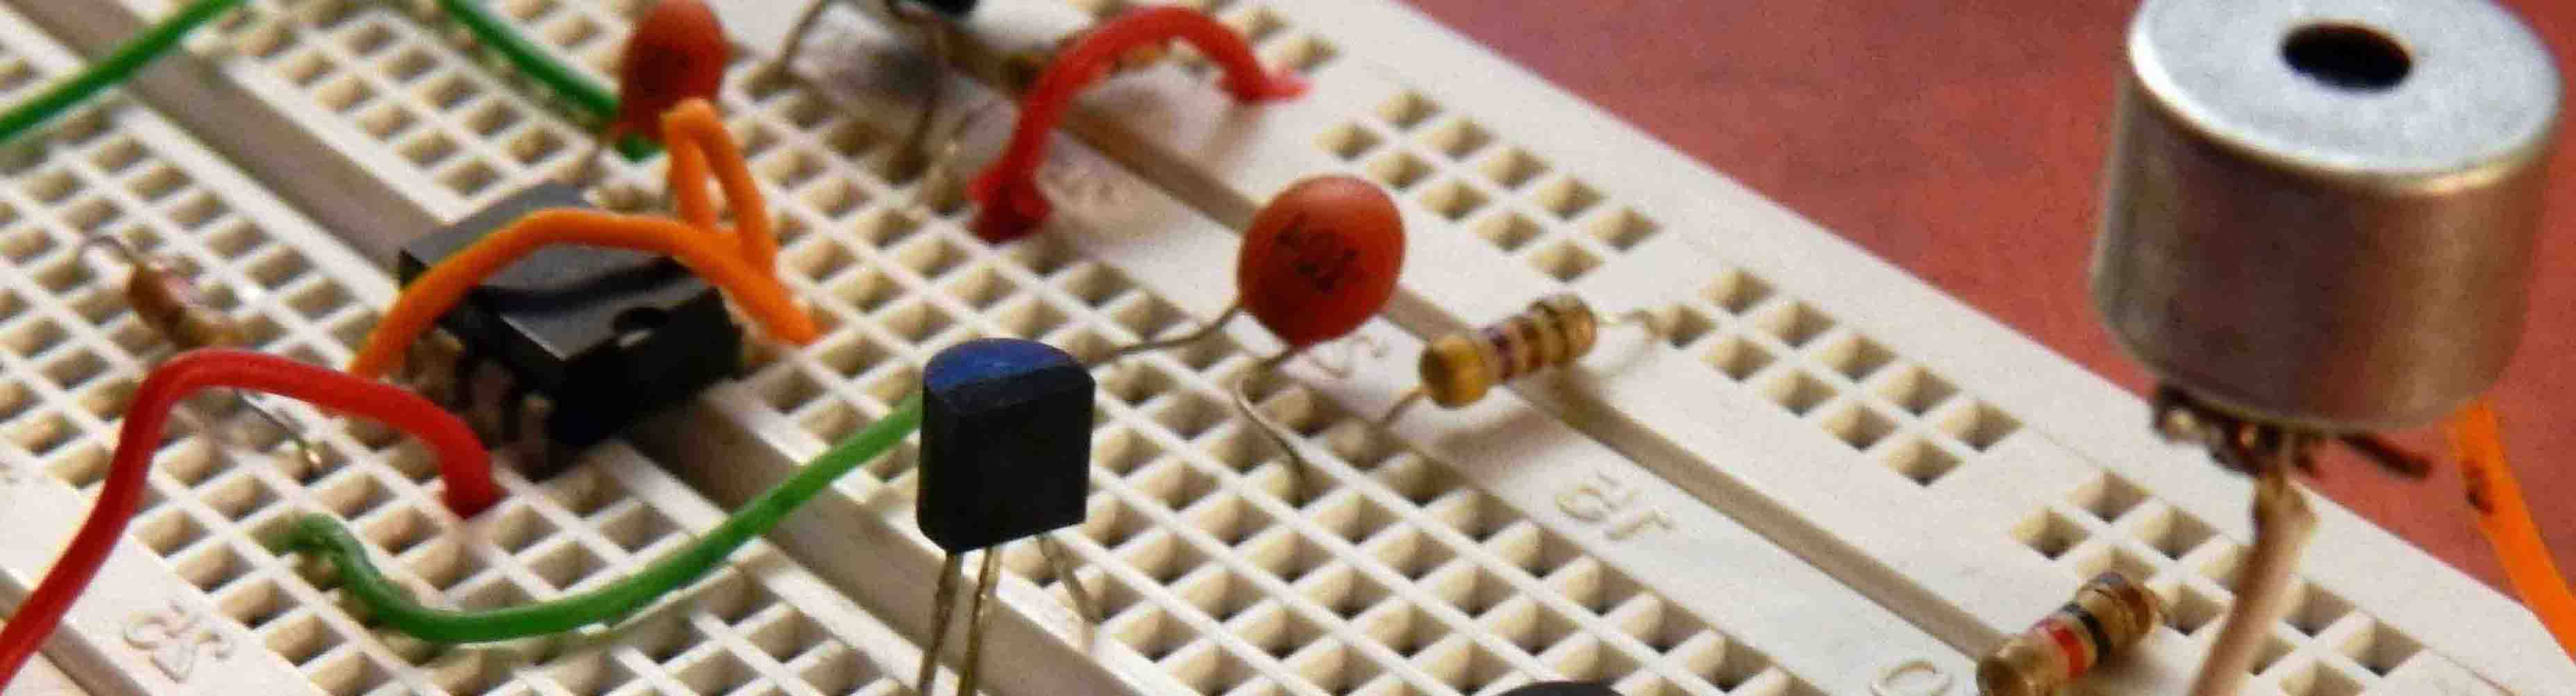 Simple Light Sensor Using 741 Op Amp Rookie Electronics Automatic Timer Switch With Ua741 Electronic Projects Circuits Clap Circuit